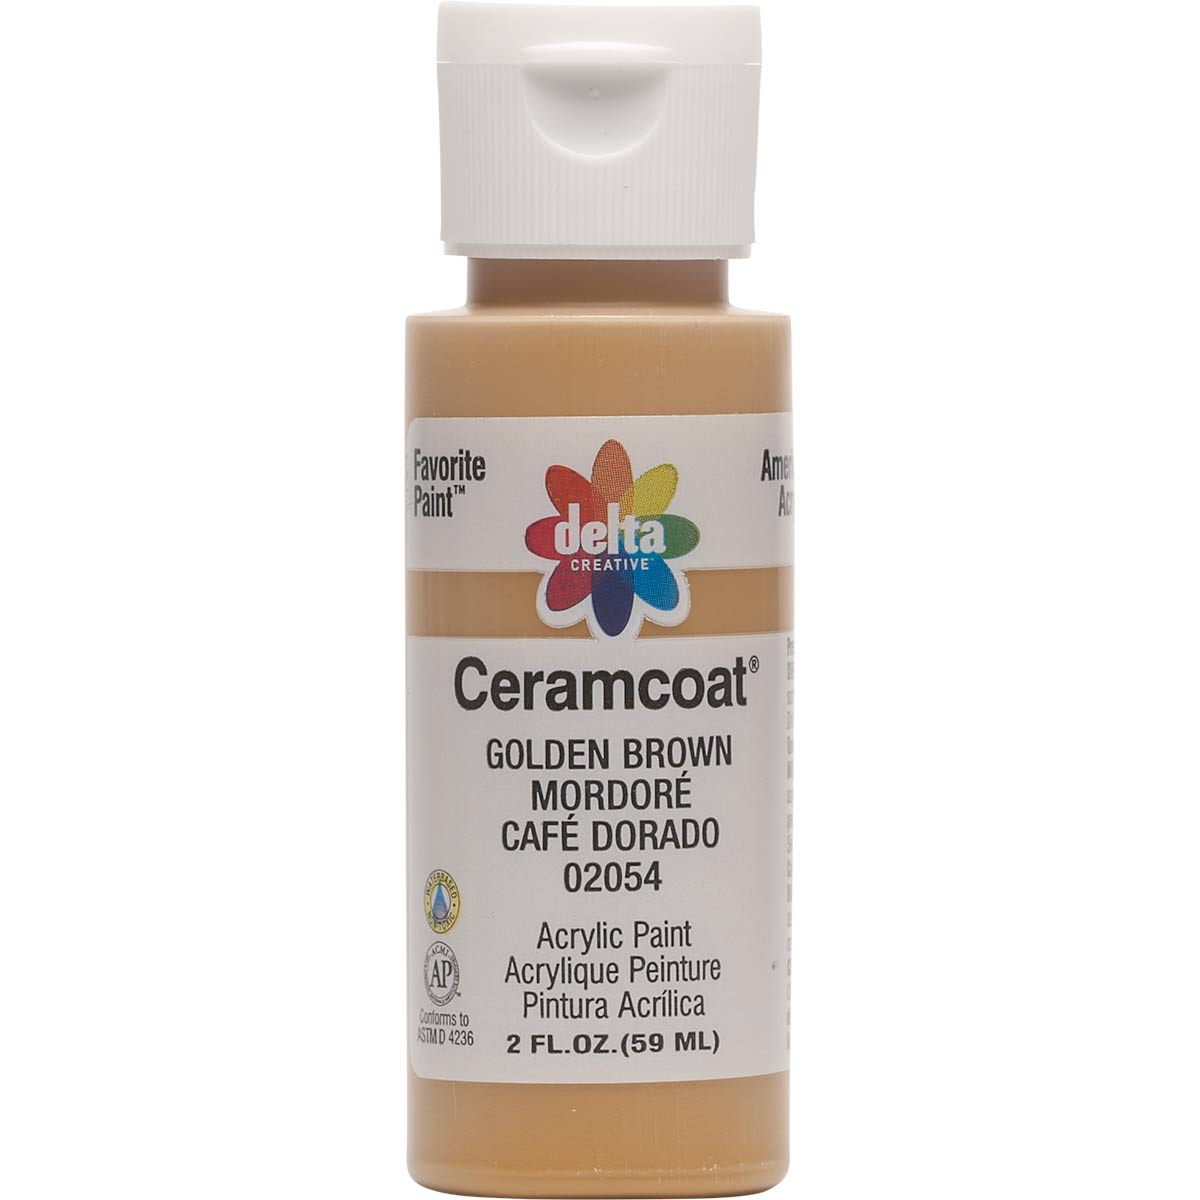 Delta Ceramcoat ® Acrylic Paint - Golden Brown, 2 oz. - 020540202W